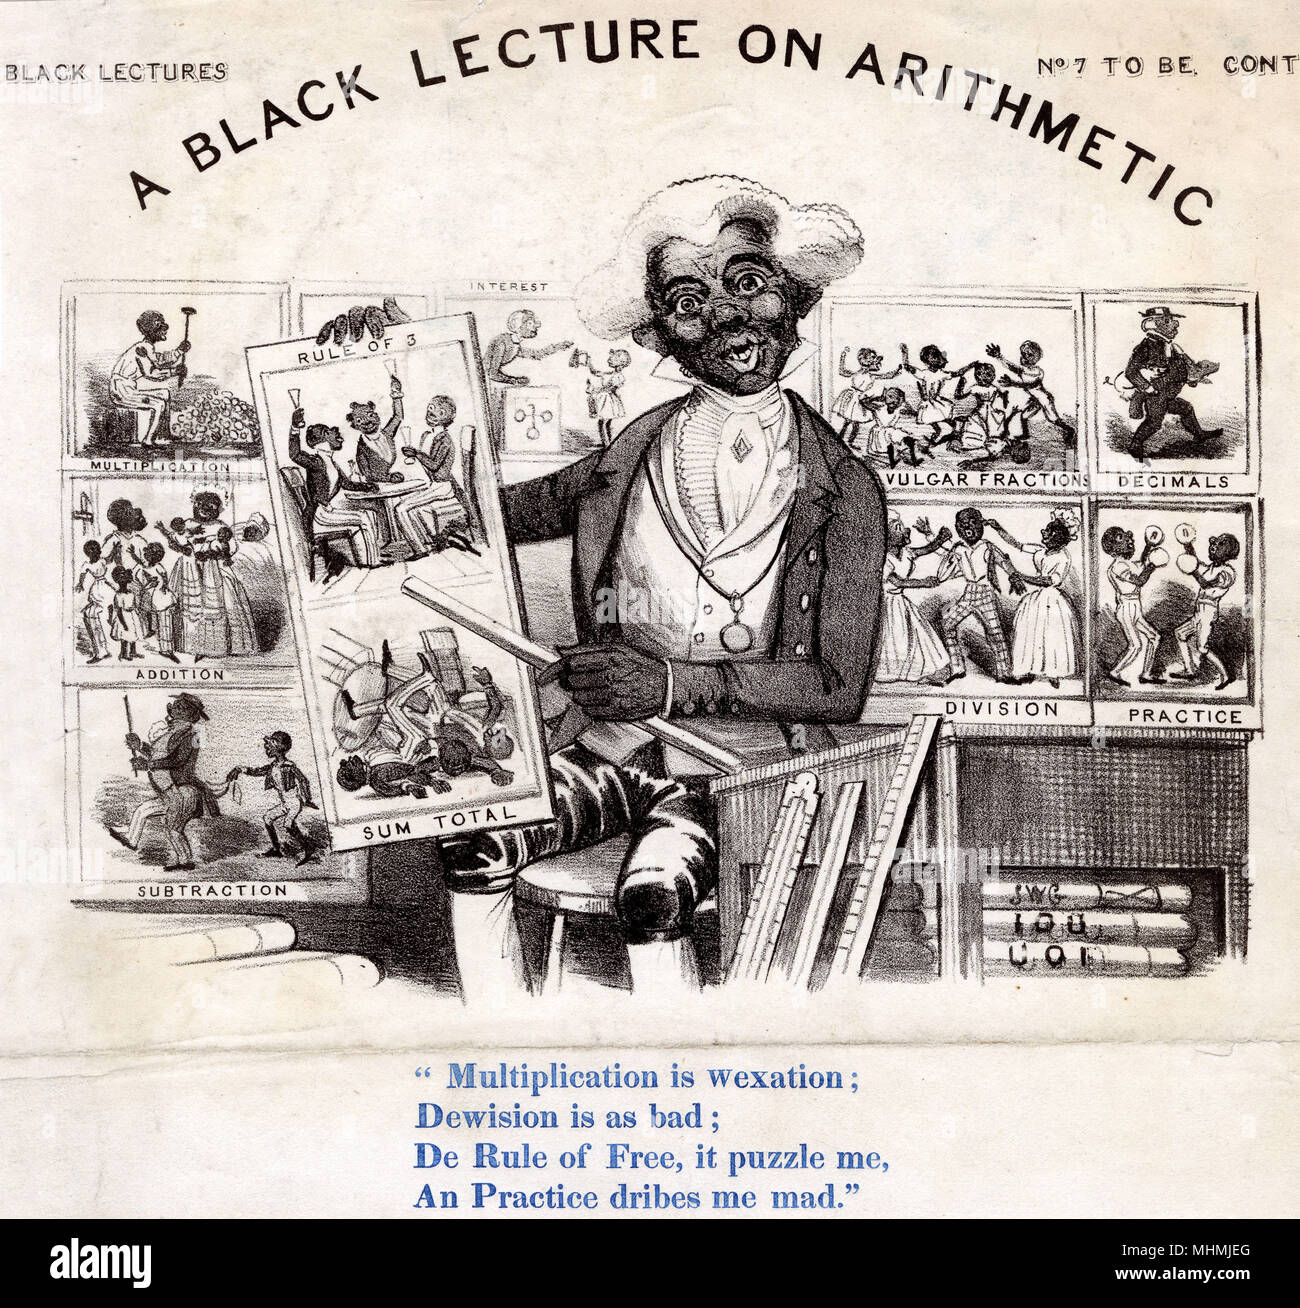 A BLACK LECTURE ON ARITHMETIC Each mathematical rule is described as an attribute of black people - in a none too complimentary way     Date: 19th century - Stock Image